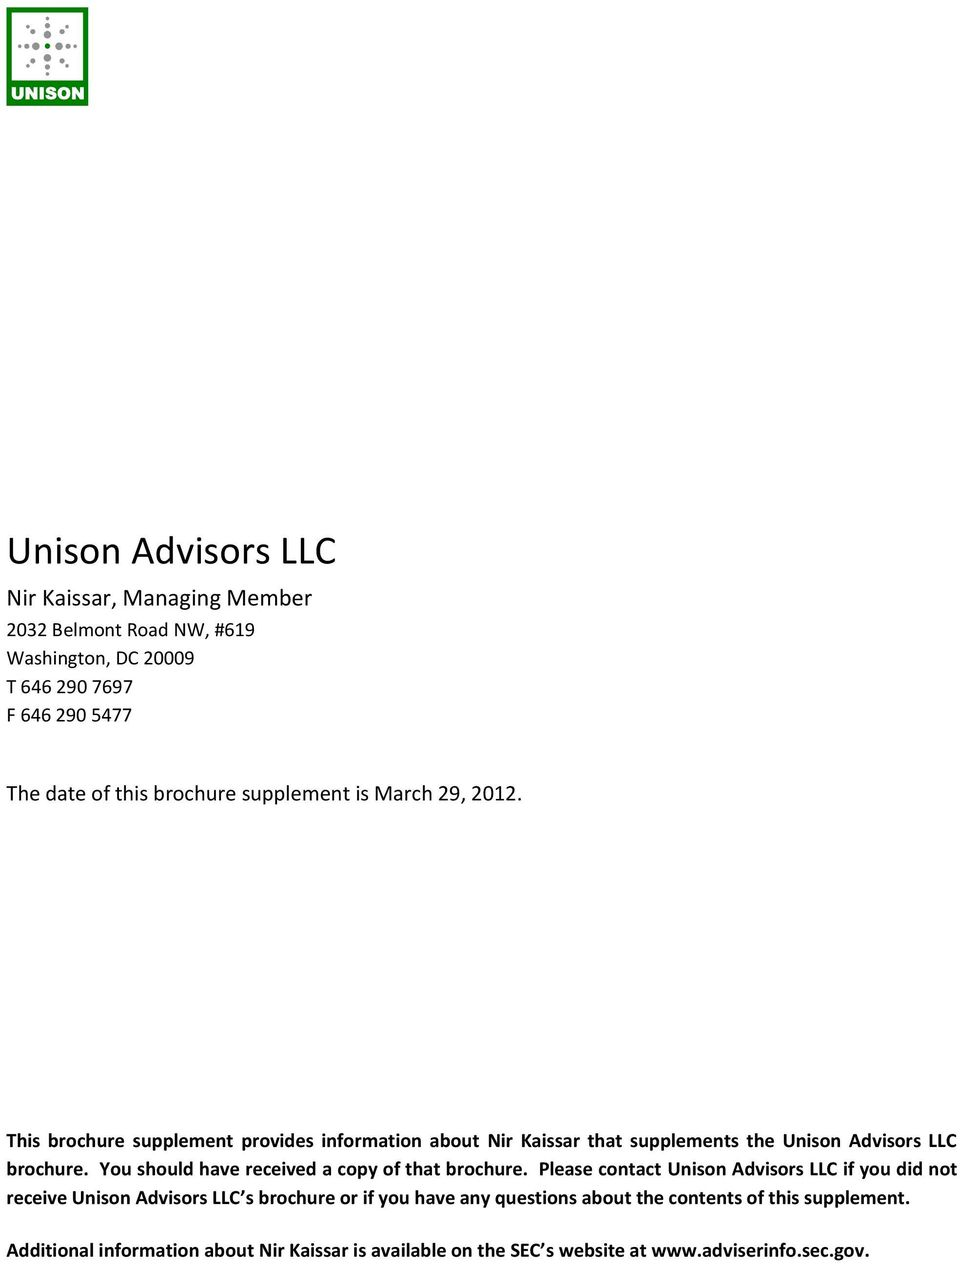 This brochure supplement provides information about Nir Kaissar that supplements the Unison Advisors LLC brochure.